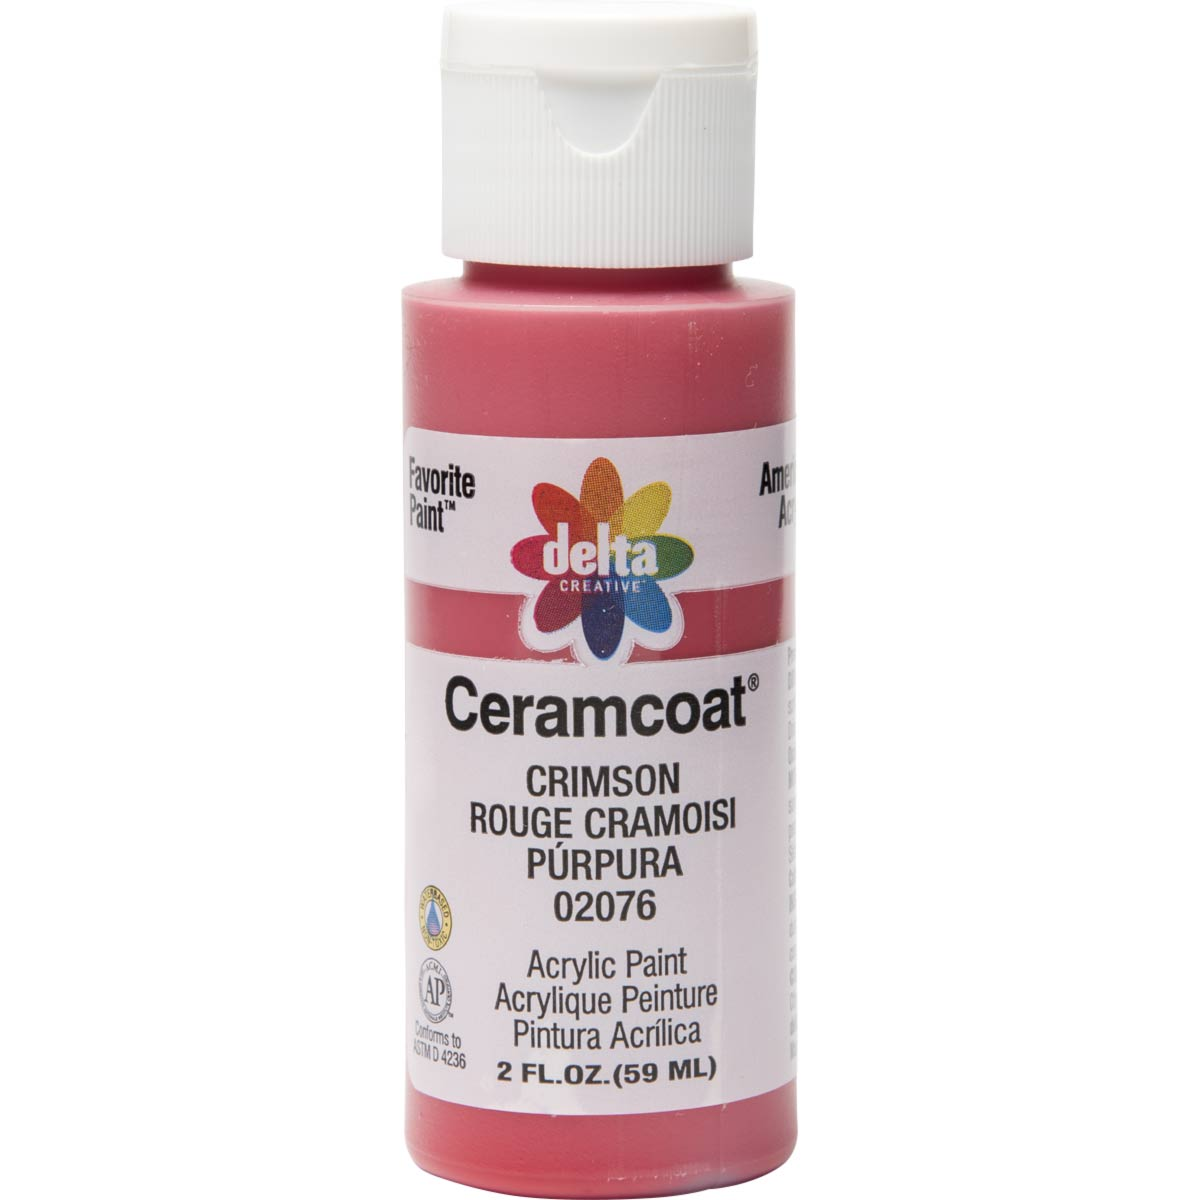 Delta Ceramcoat ® Acrylic Paint - Crimson, 2 oz. - 020760202W